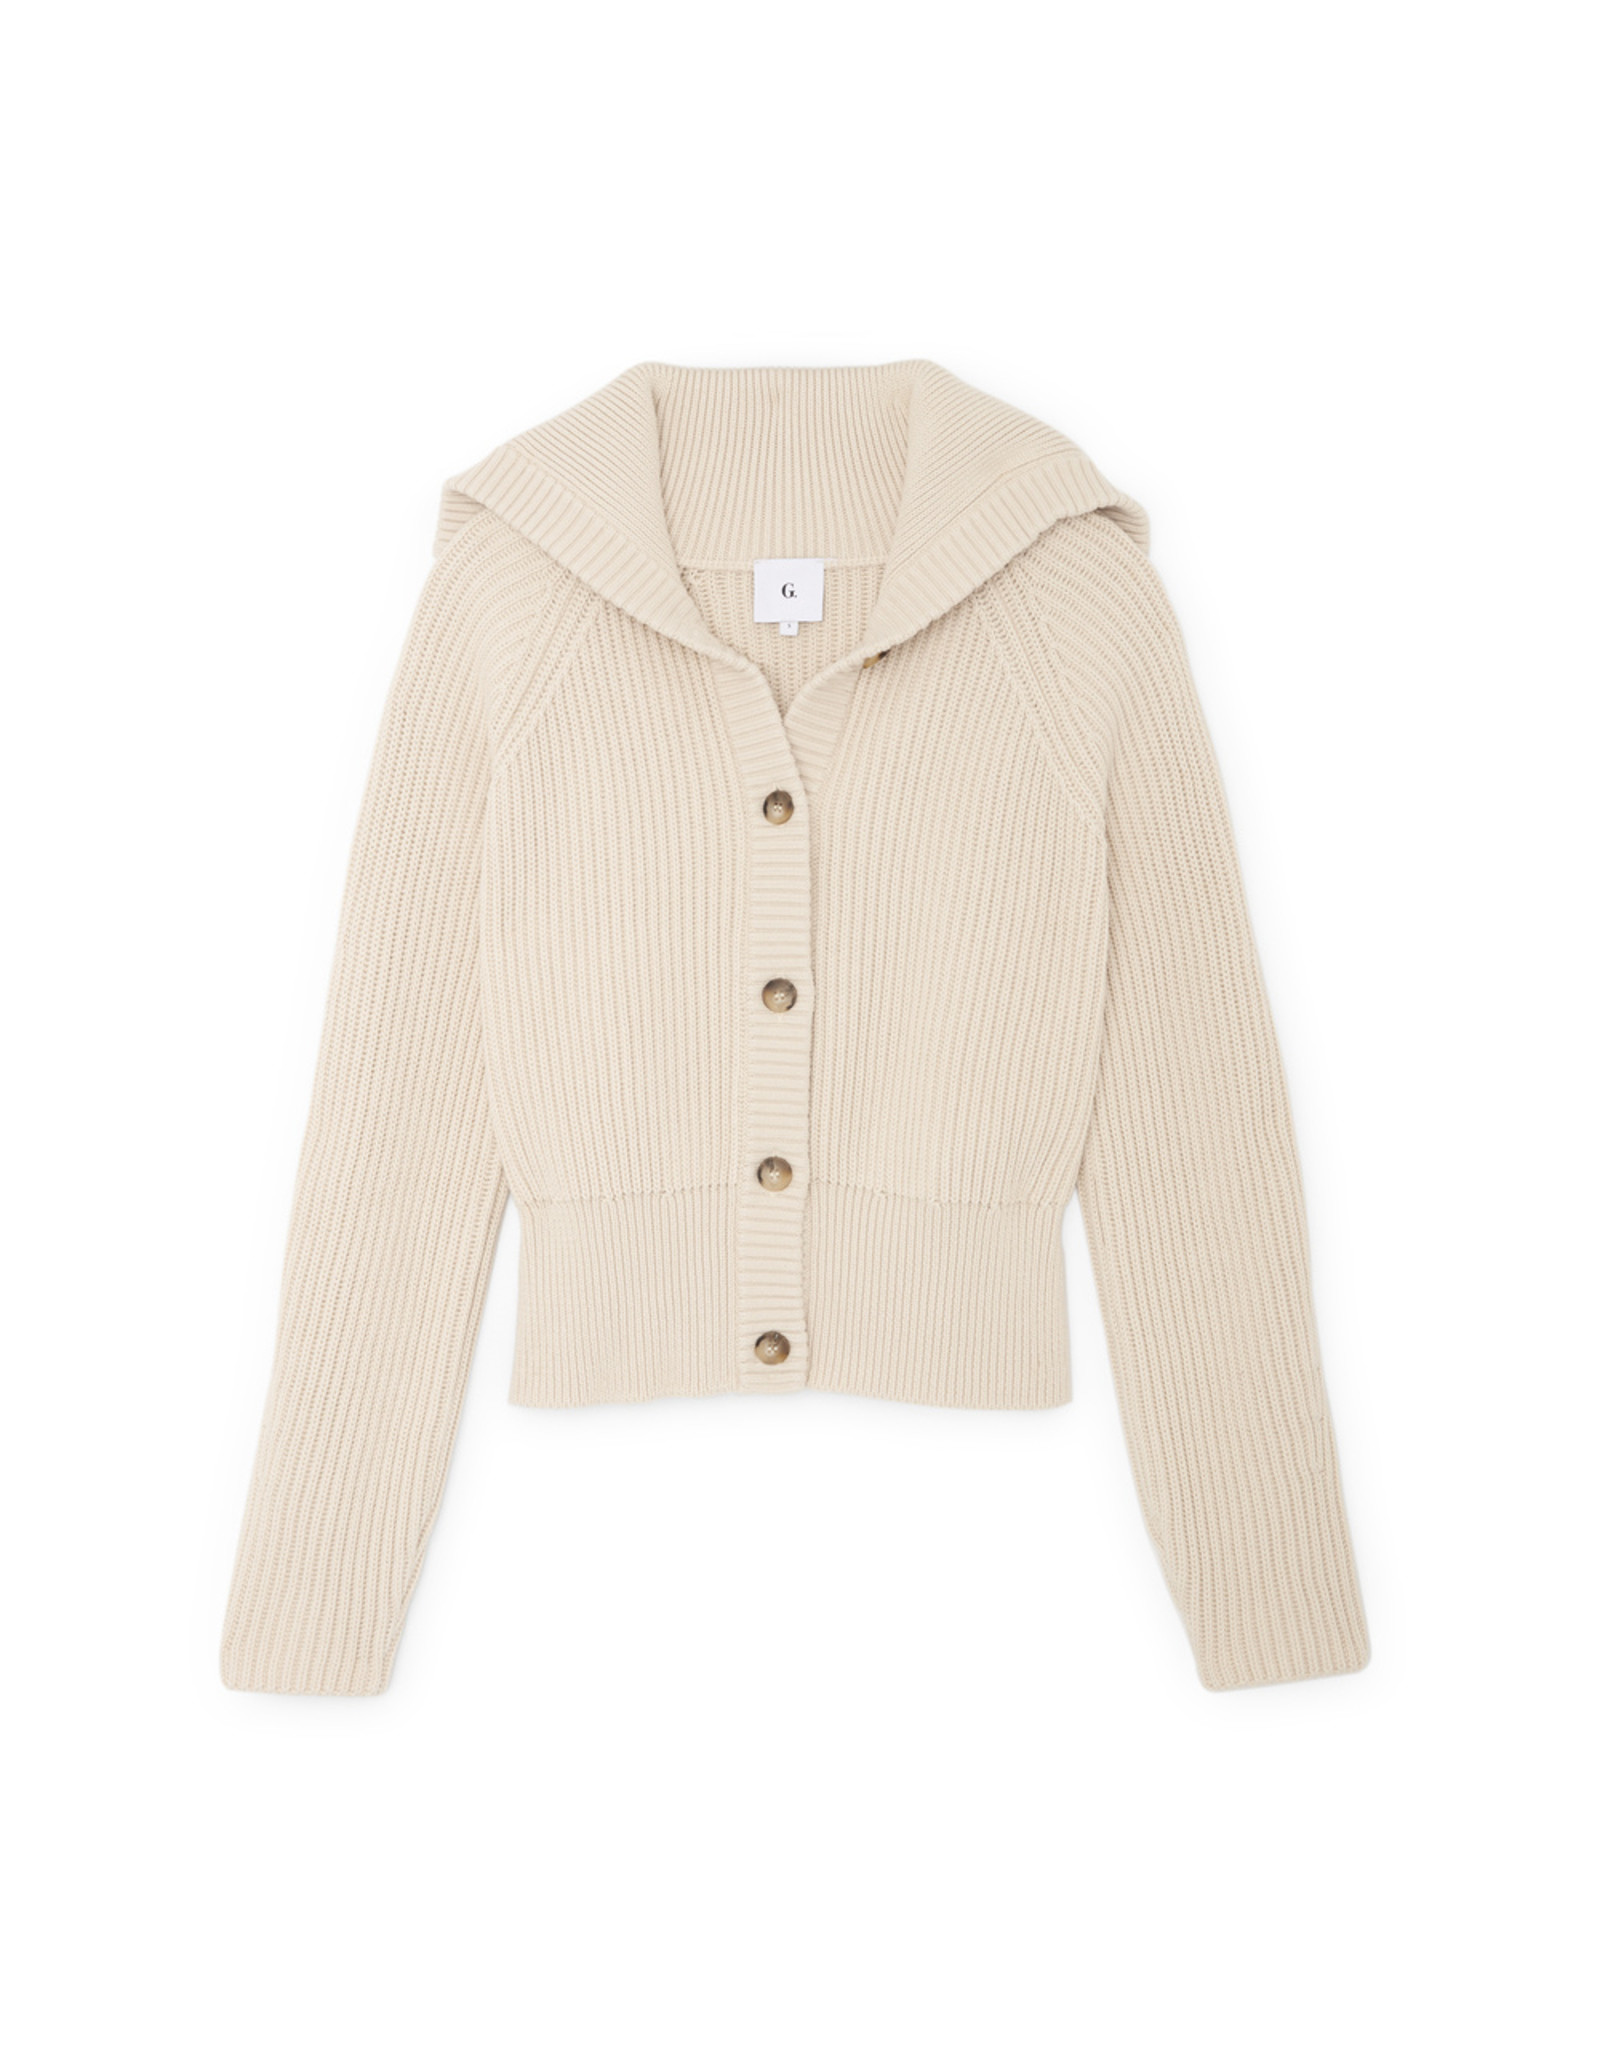 G. Label G. Label Bella Button Bomber Cardigan (Color: Ivory, Size: XS)